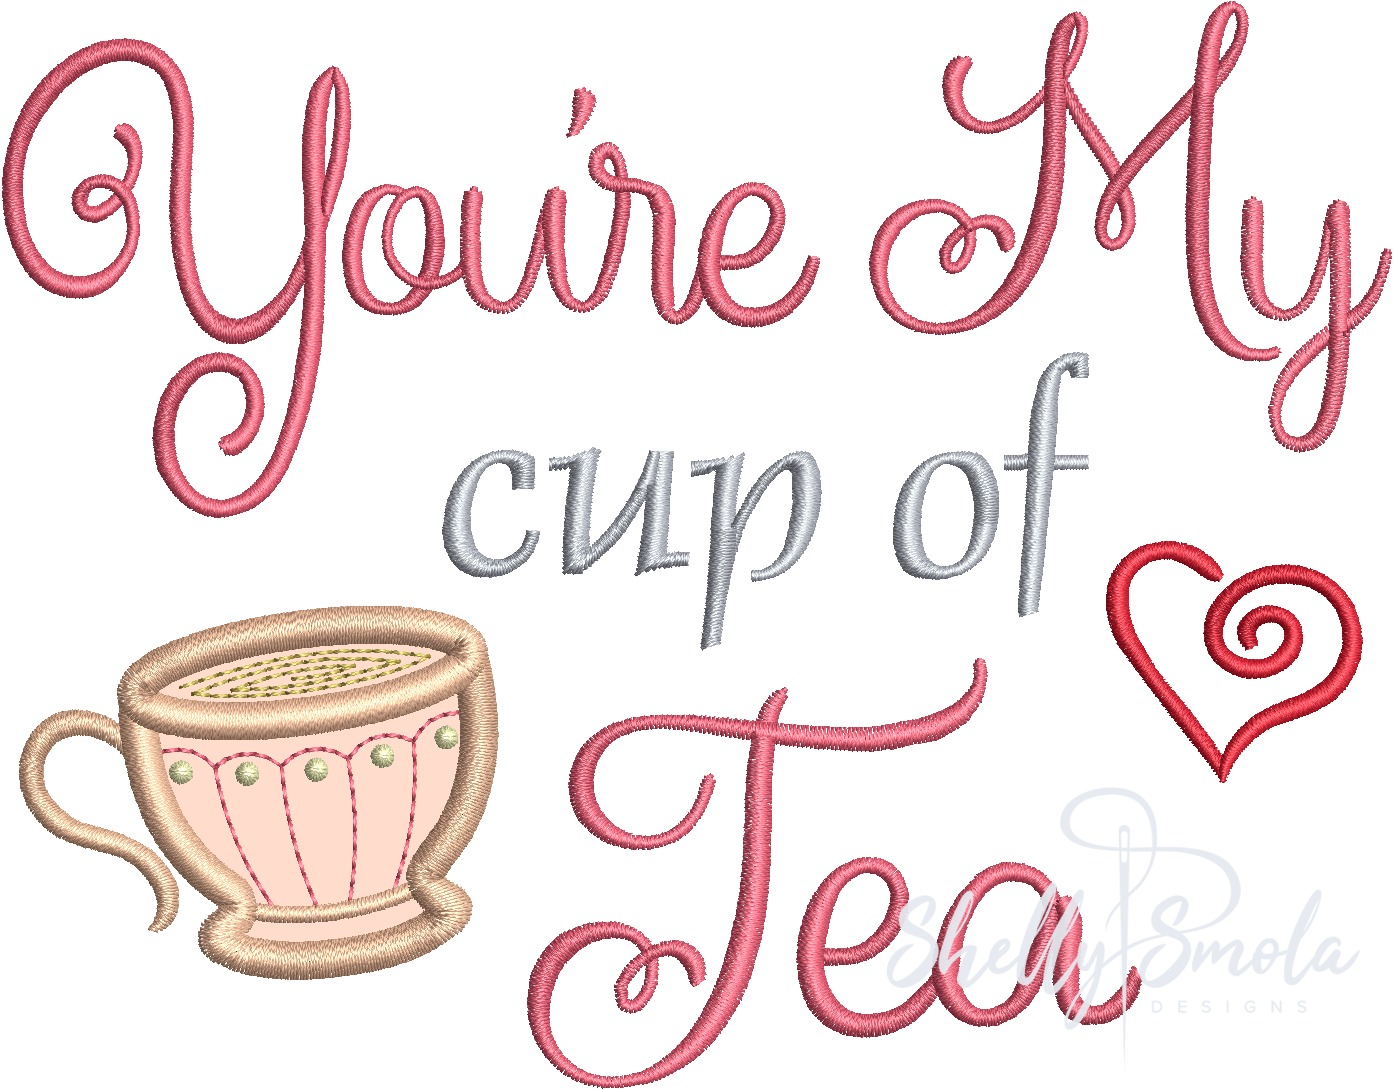 Cup of Tea by Shelly Smola